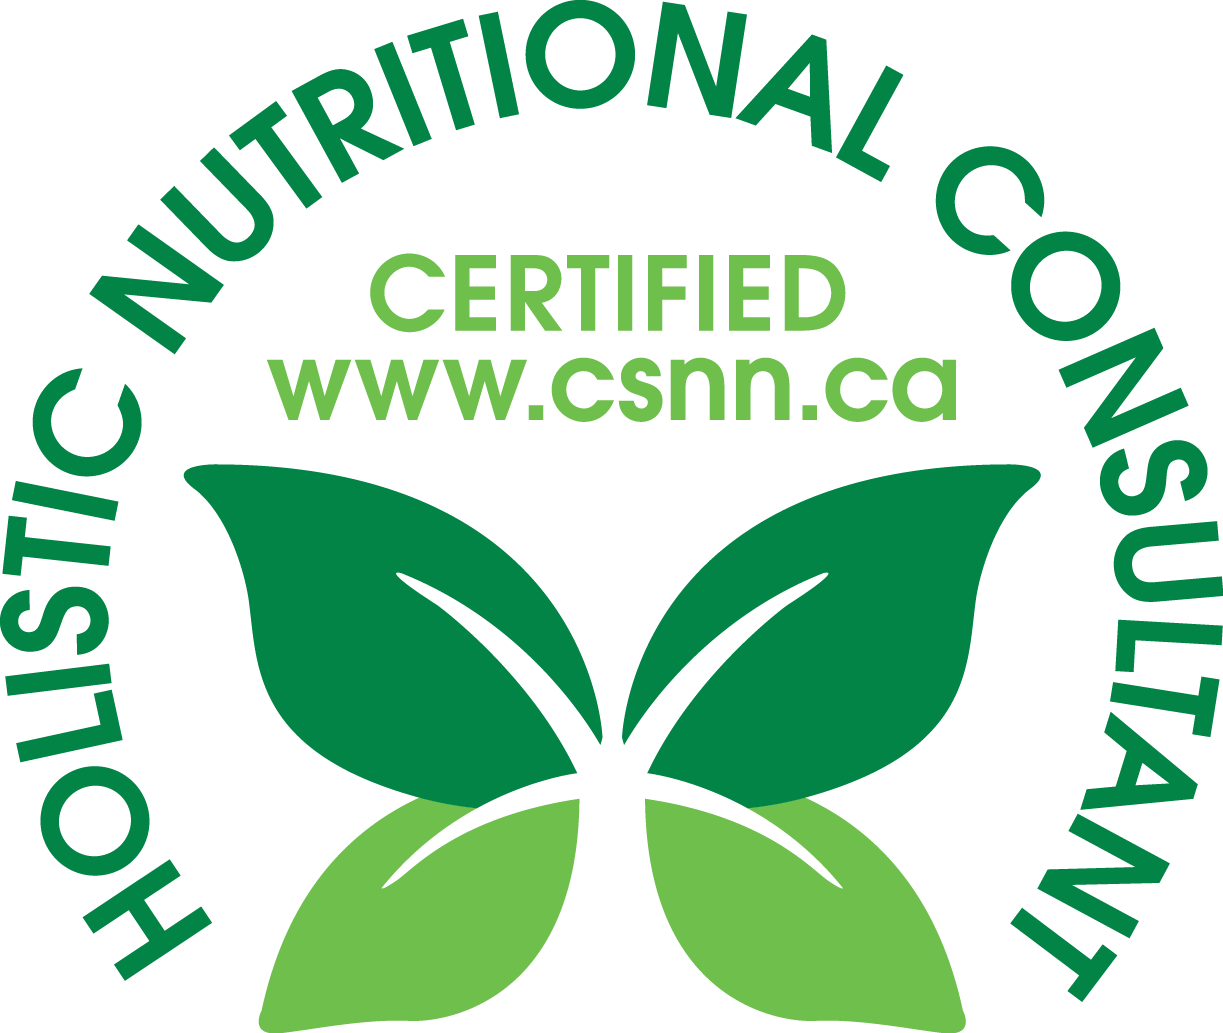 CSNN Certification Mark-lg.png